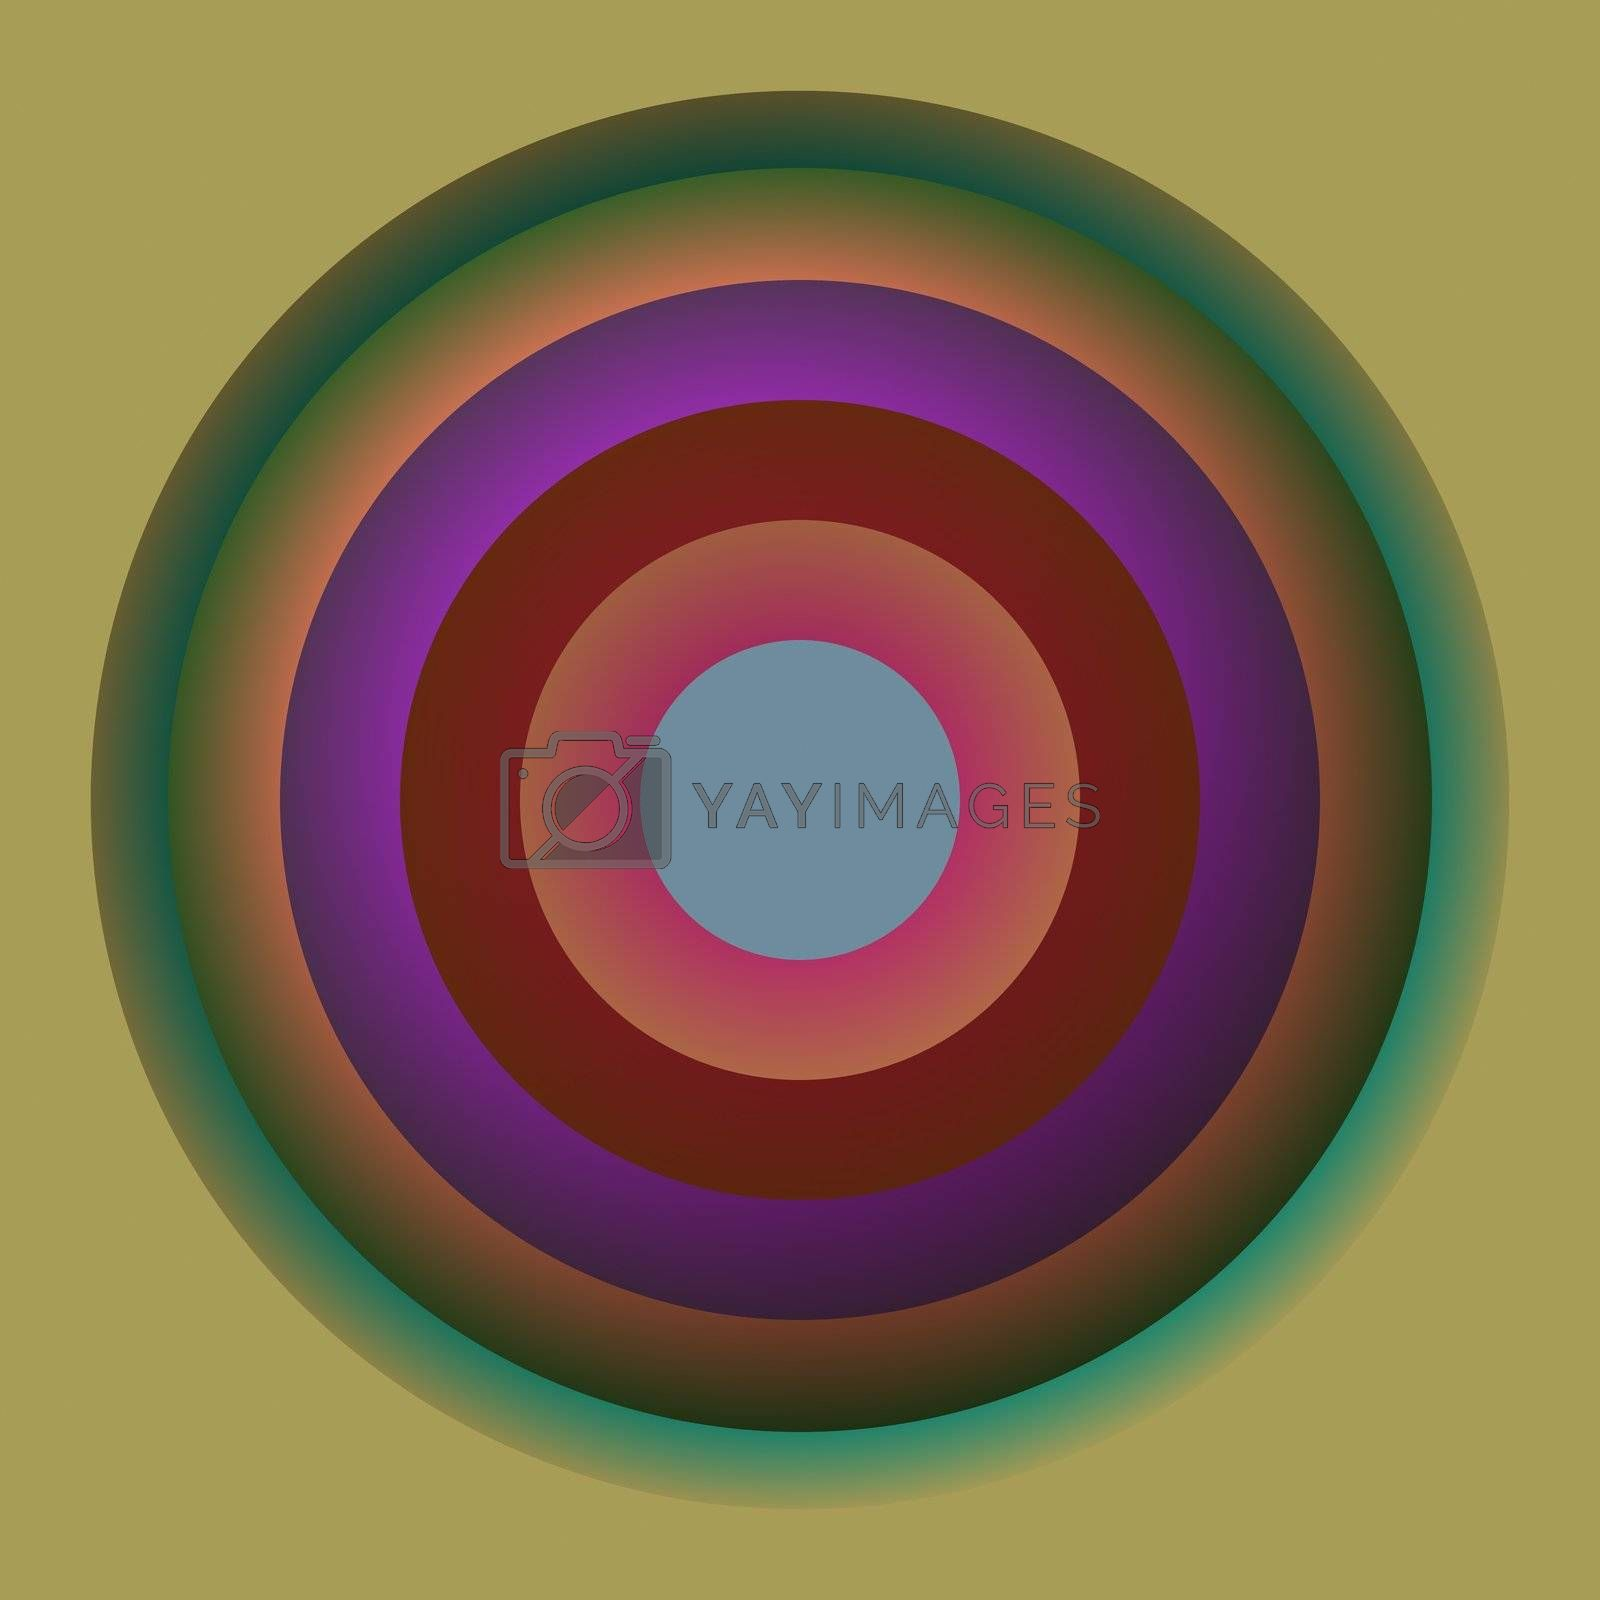 Royalty free image of Color circles by kgtoh